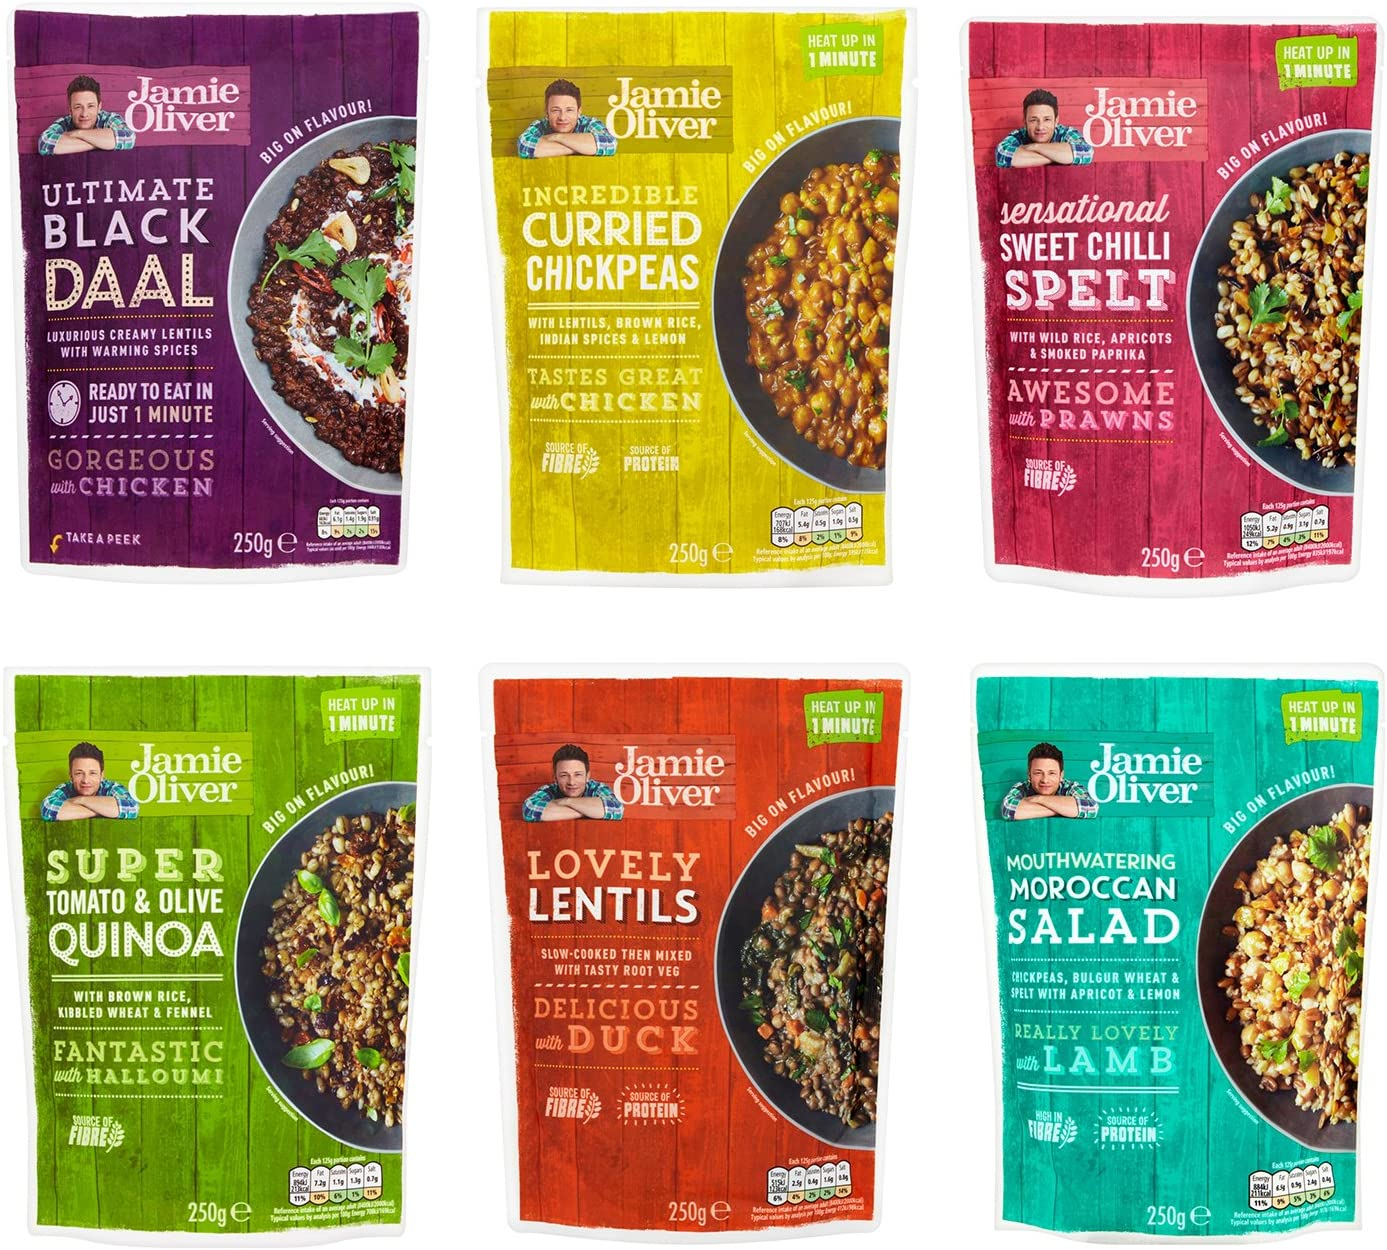 Jamie Oliver Healthy Selection Of 6 Amazing Grains And Pulses Packs 1500g Amazon Co Uk Grocery